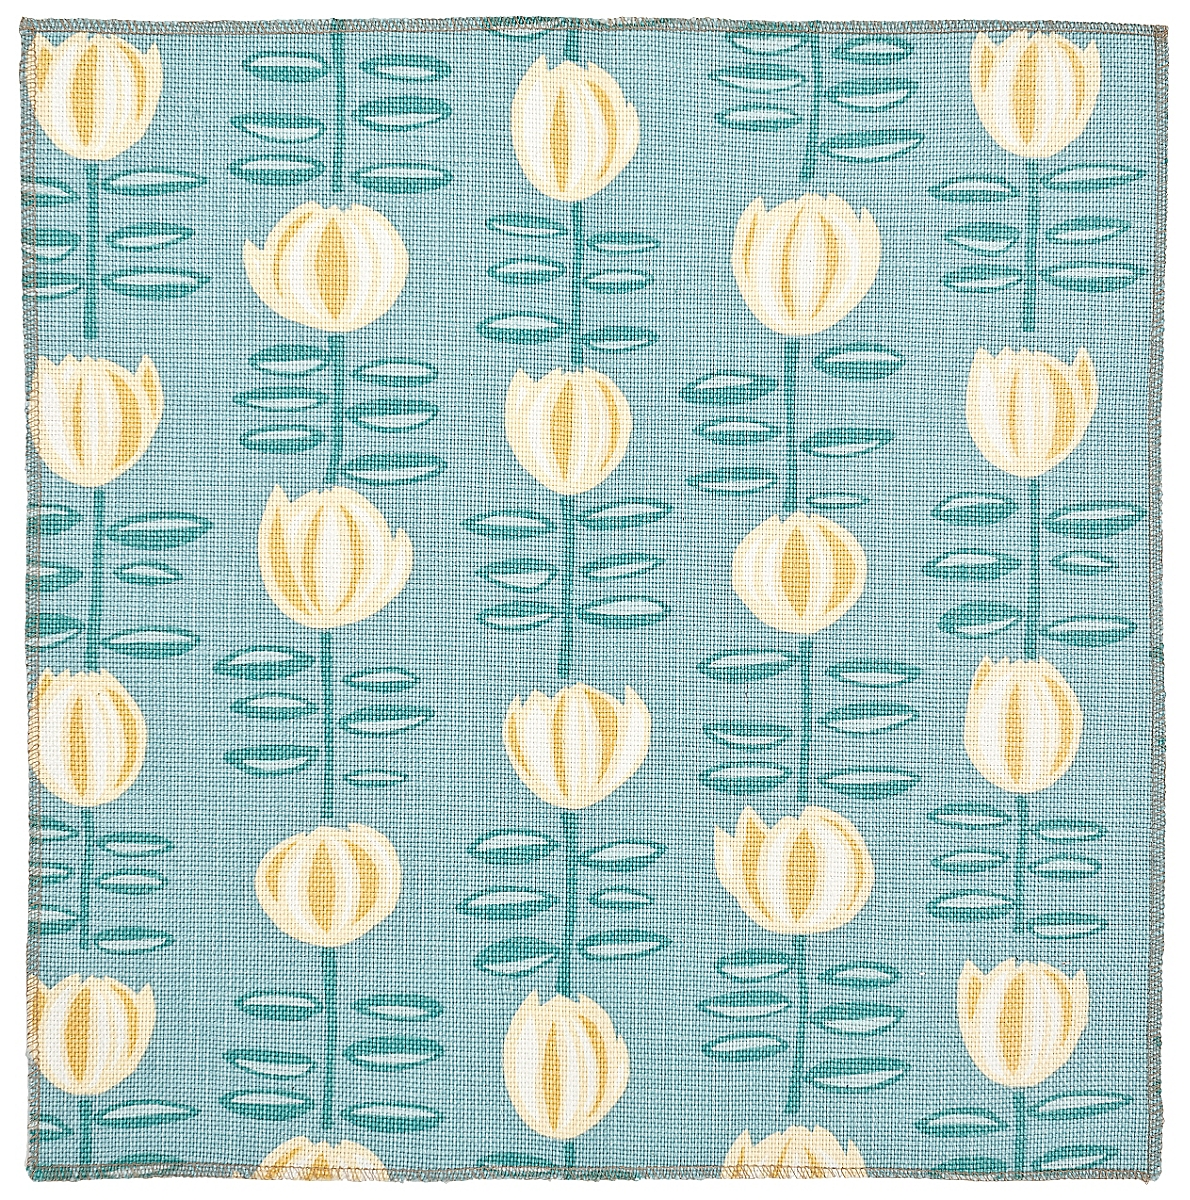 Mayflower: Porch (fabric yardage)